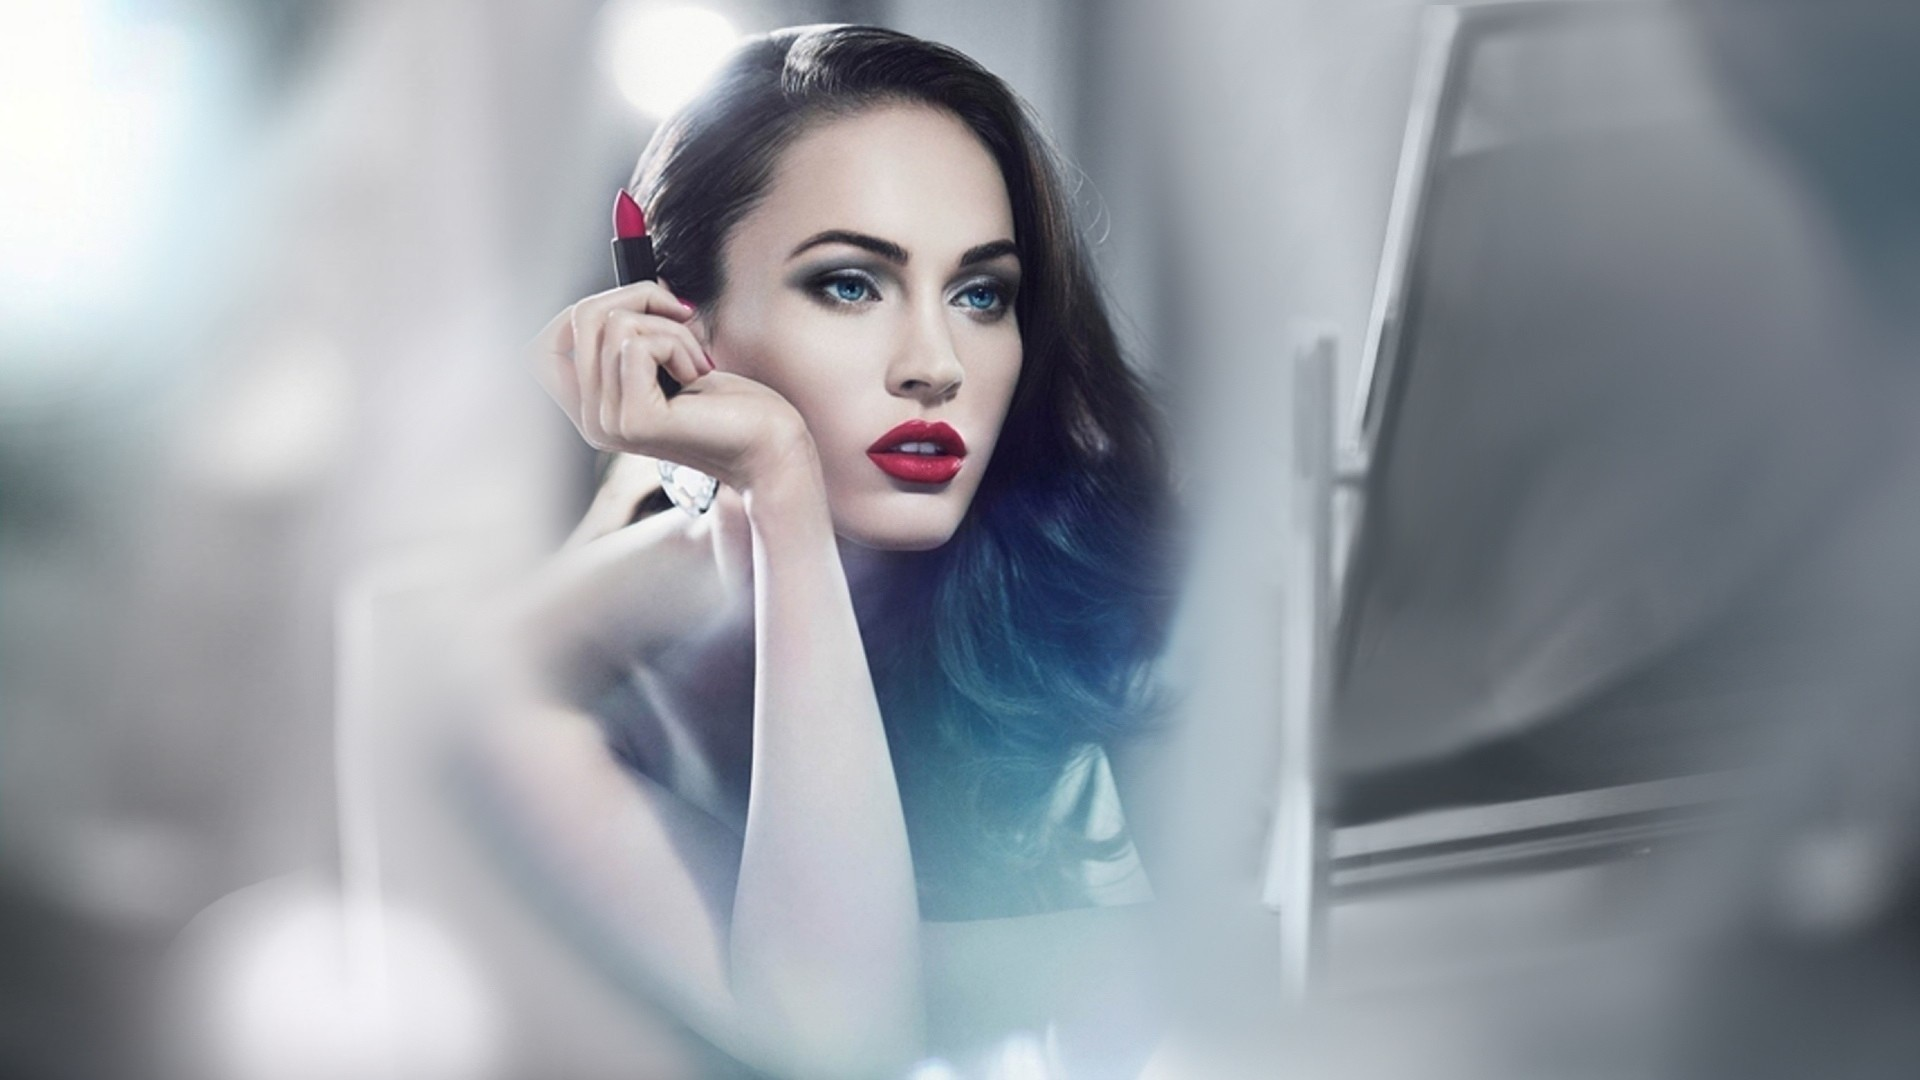 Wallpaper Megan Fox Images